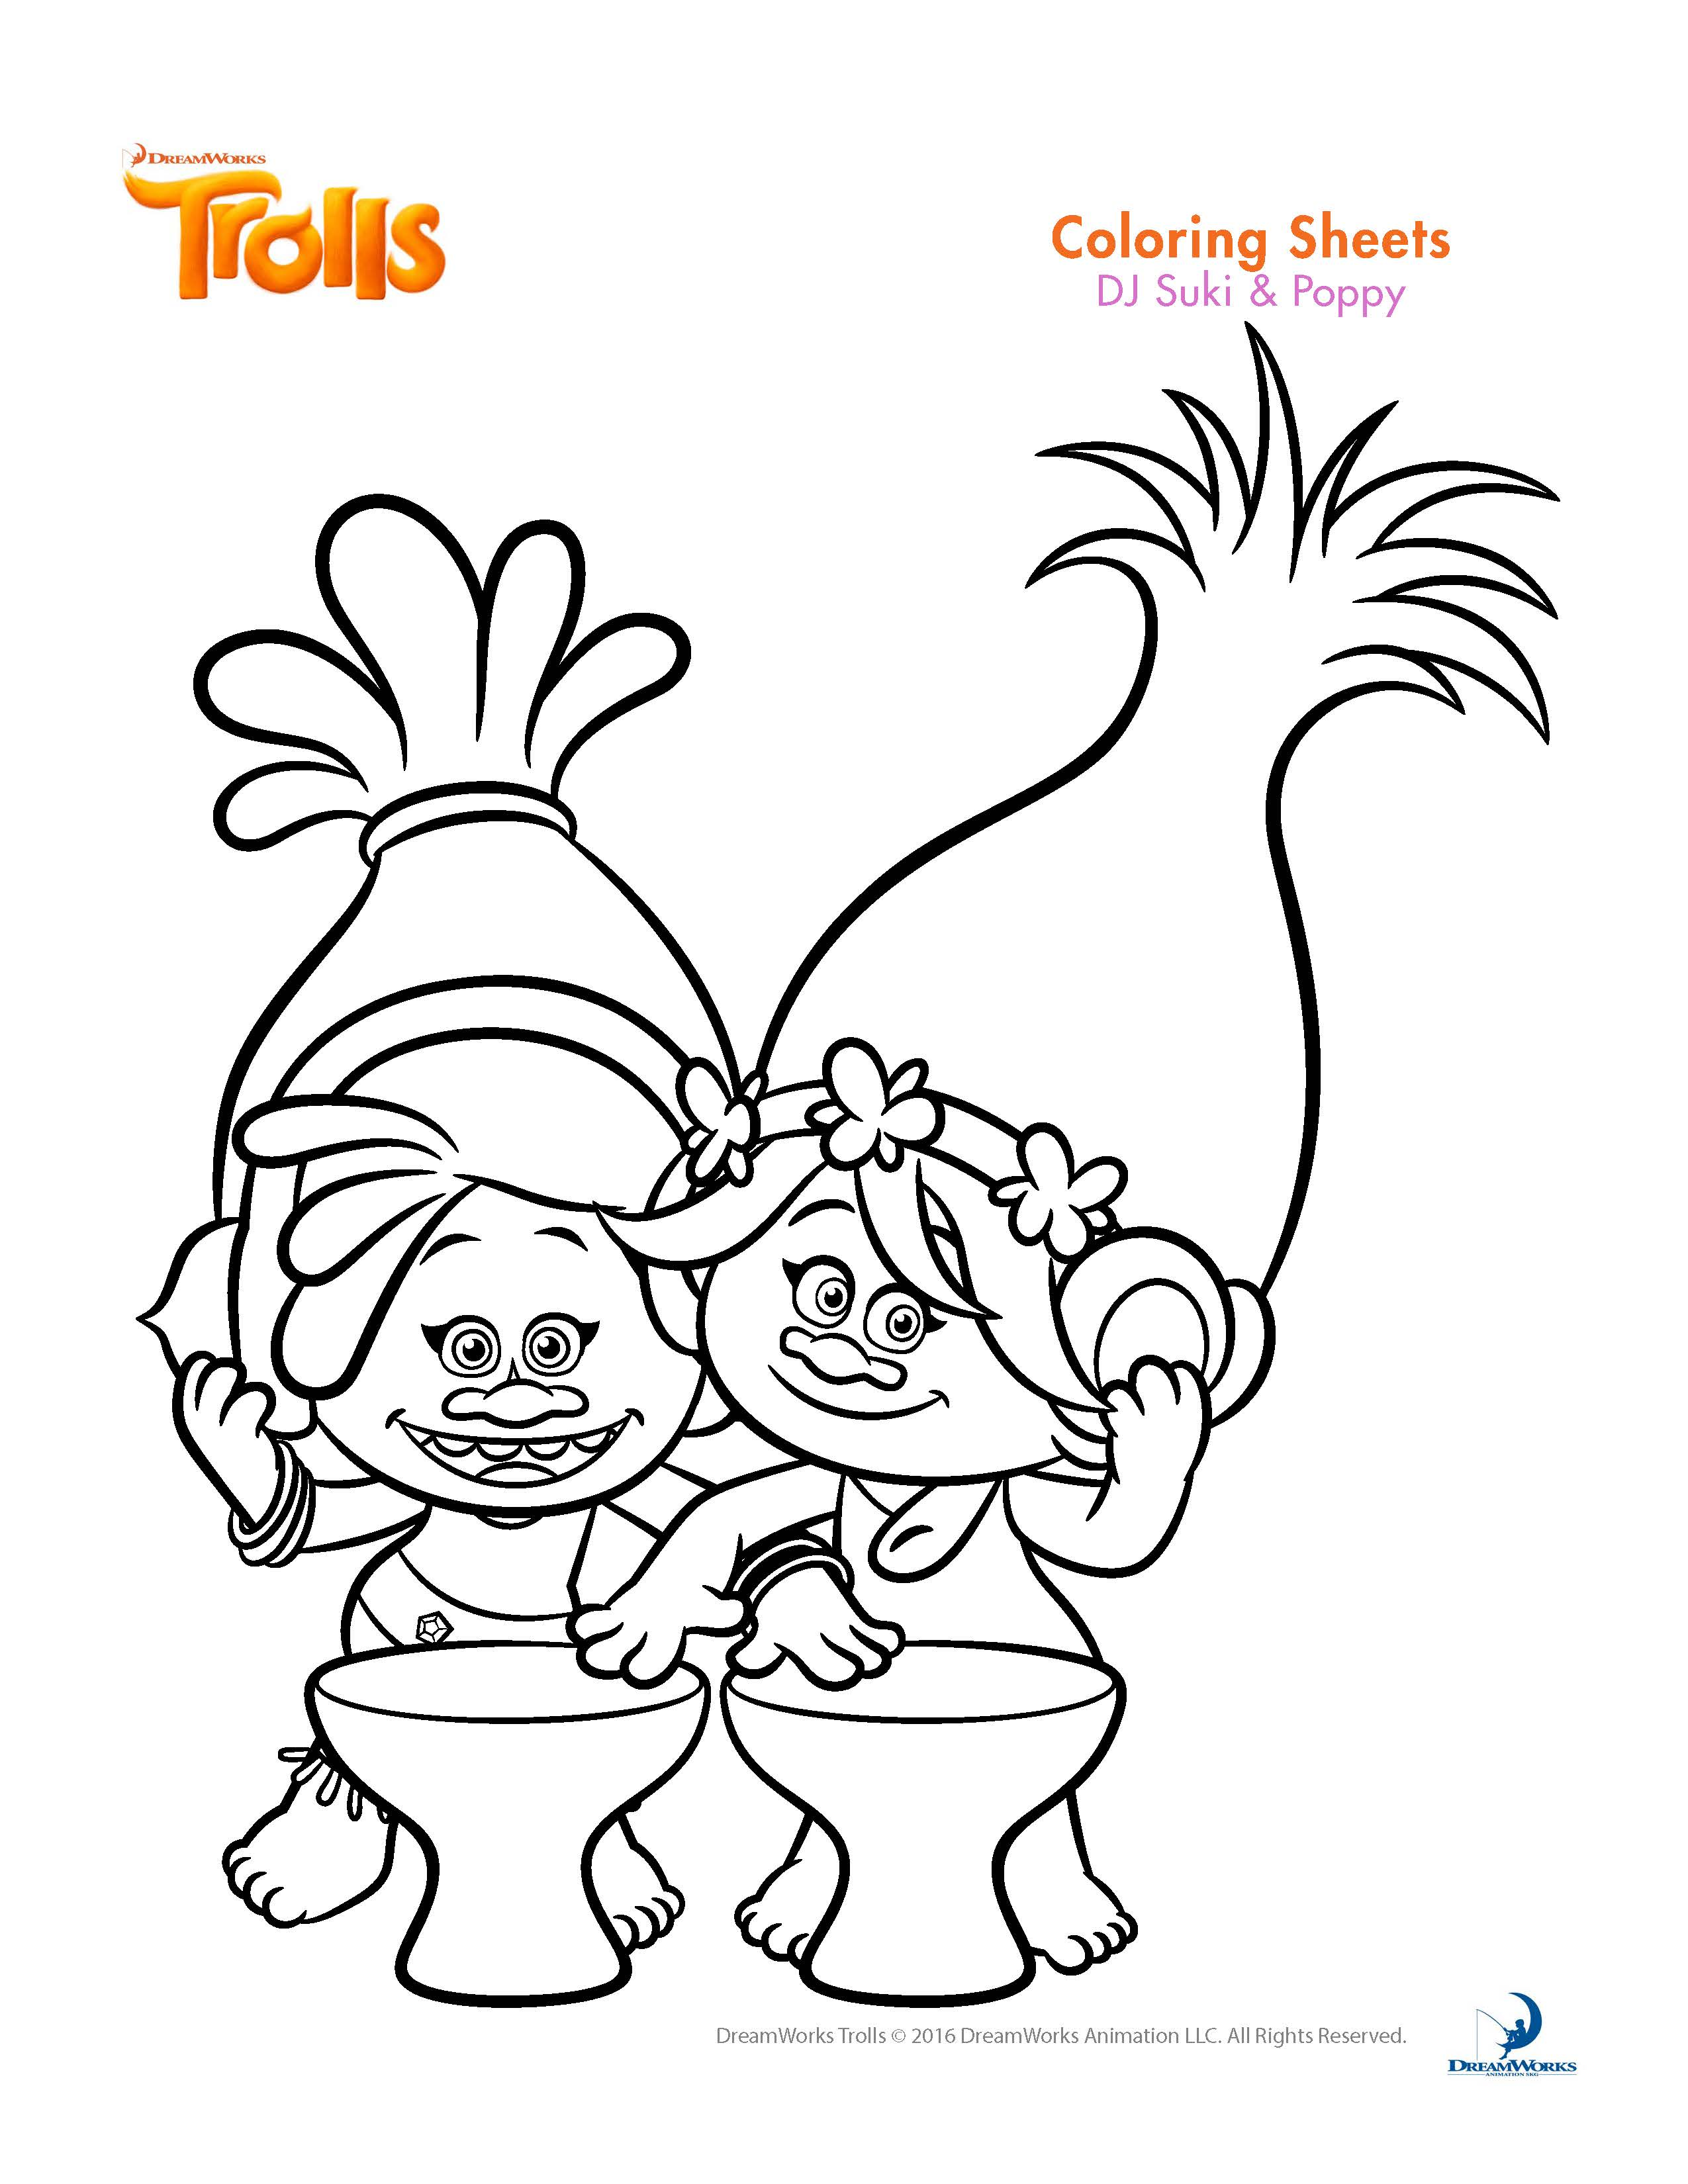 Trolls coloring pages baby poppy - Trolls Coloring Sheet Suki Poppy